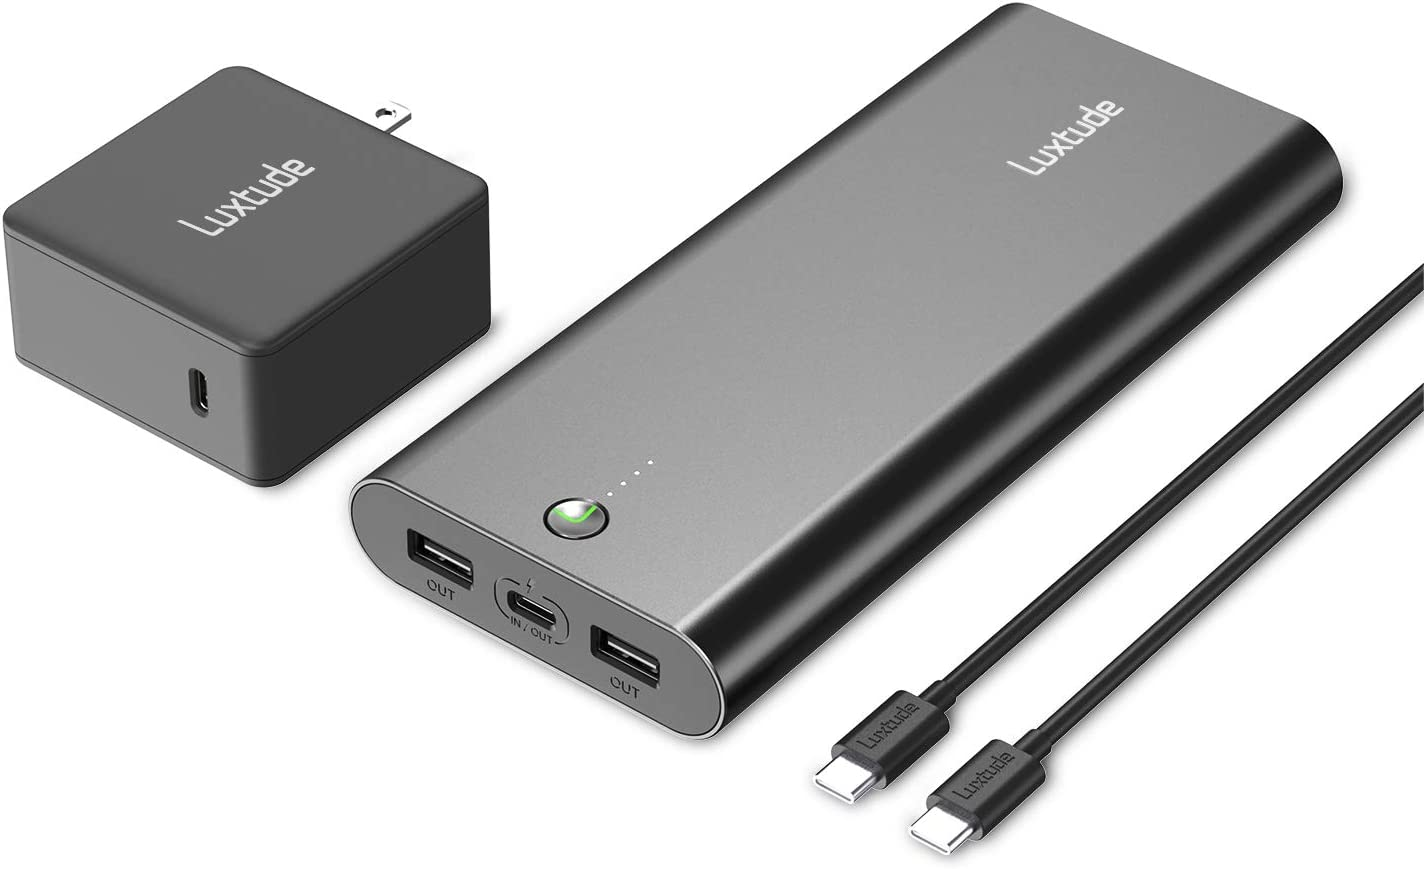 Luxtude 20000mAh Power Bank Portable Charger for Laptop, iPhone, iPad and Android, Fast Charging PD Portable Charger, 45W PD&QC 3.0 Power Delivery USB C Power Bank. (60W USB C Charger&Cable Included)